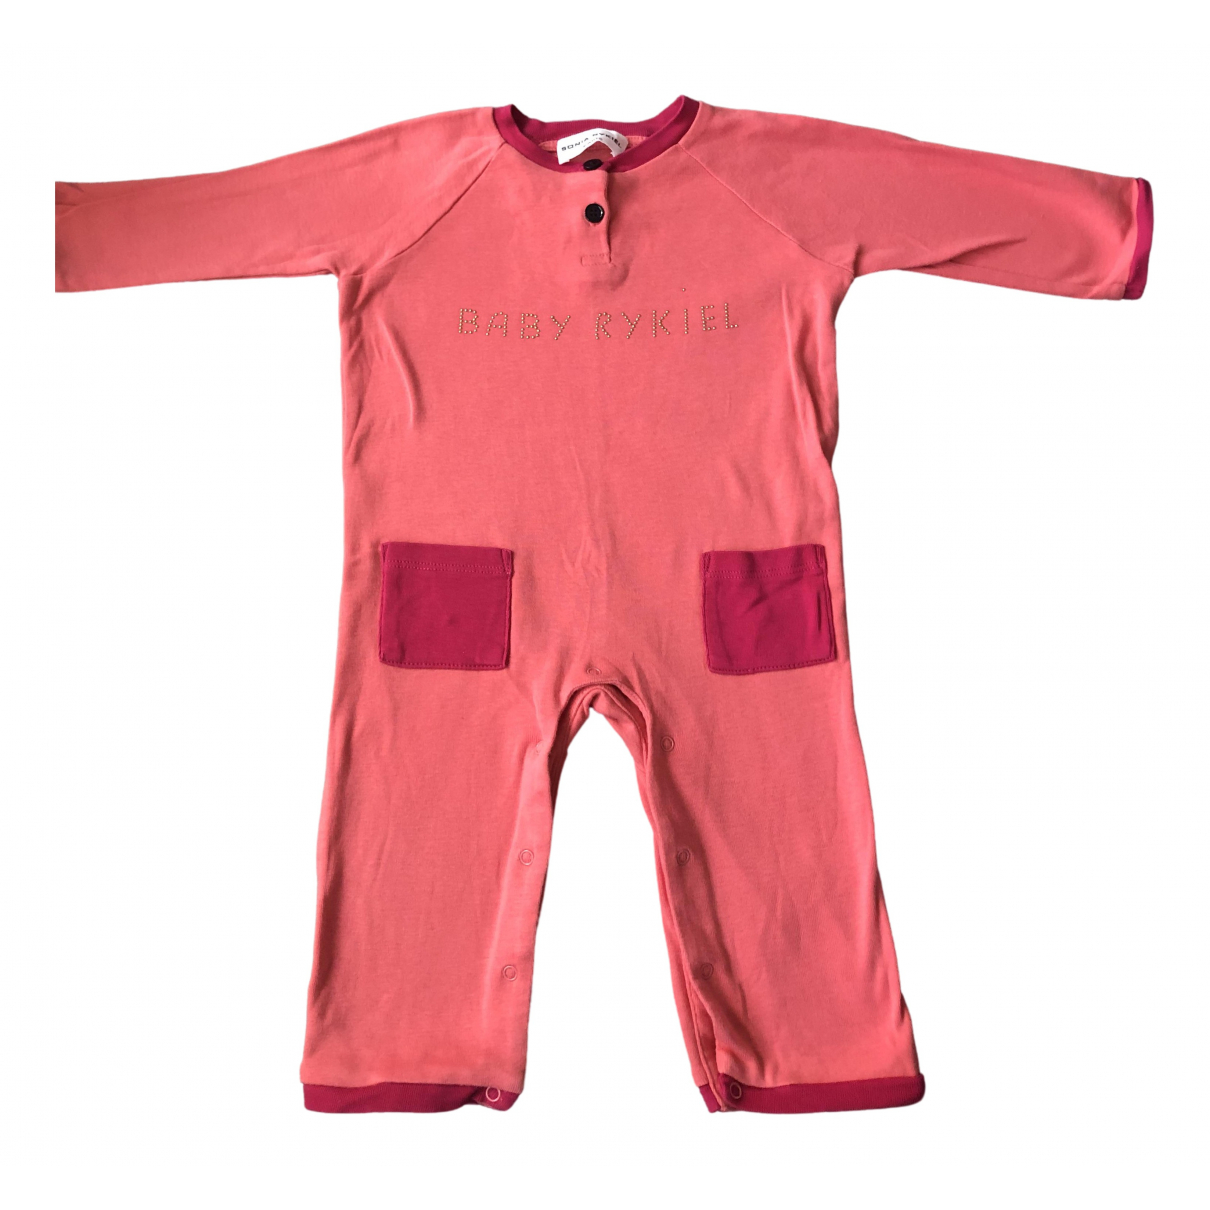 Sonia Rykiel \N Cotton Outfits for Kids 12 months - up to 74cm FR